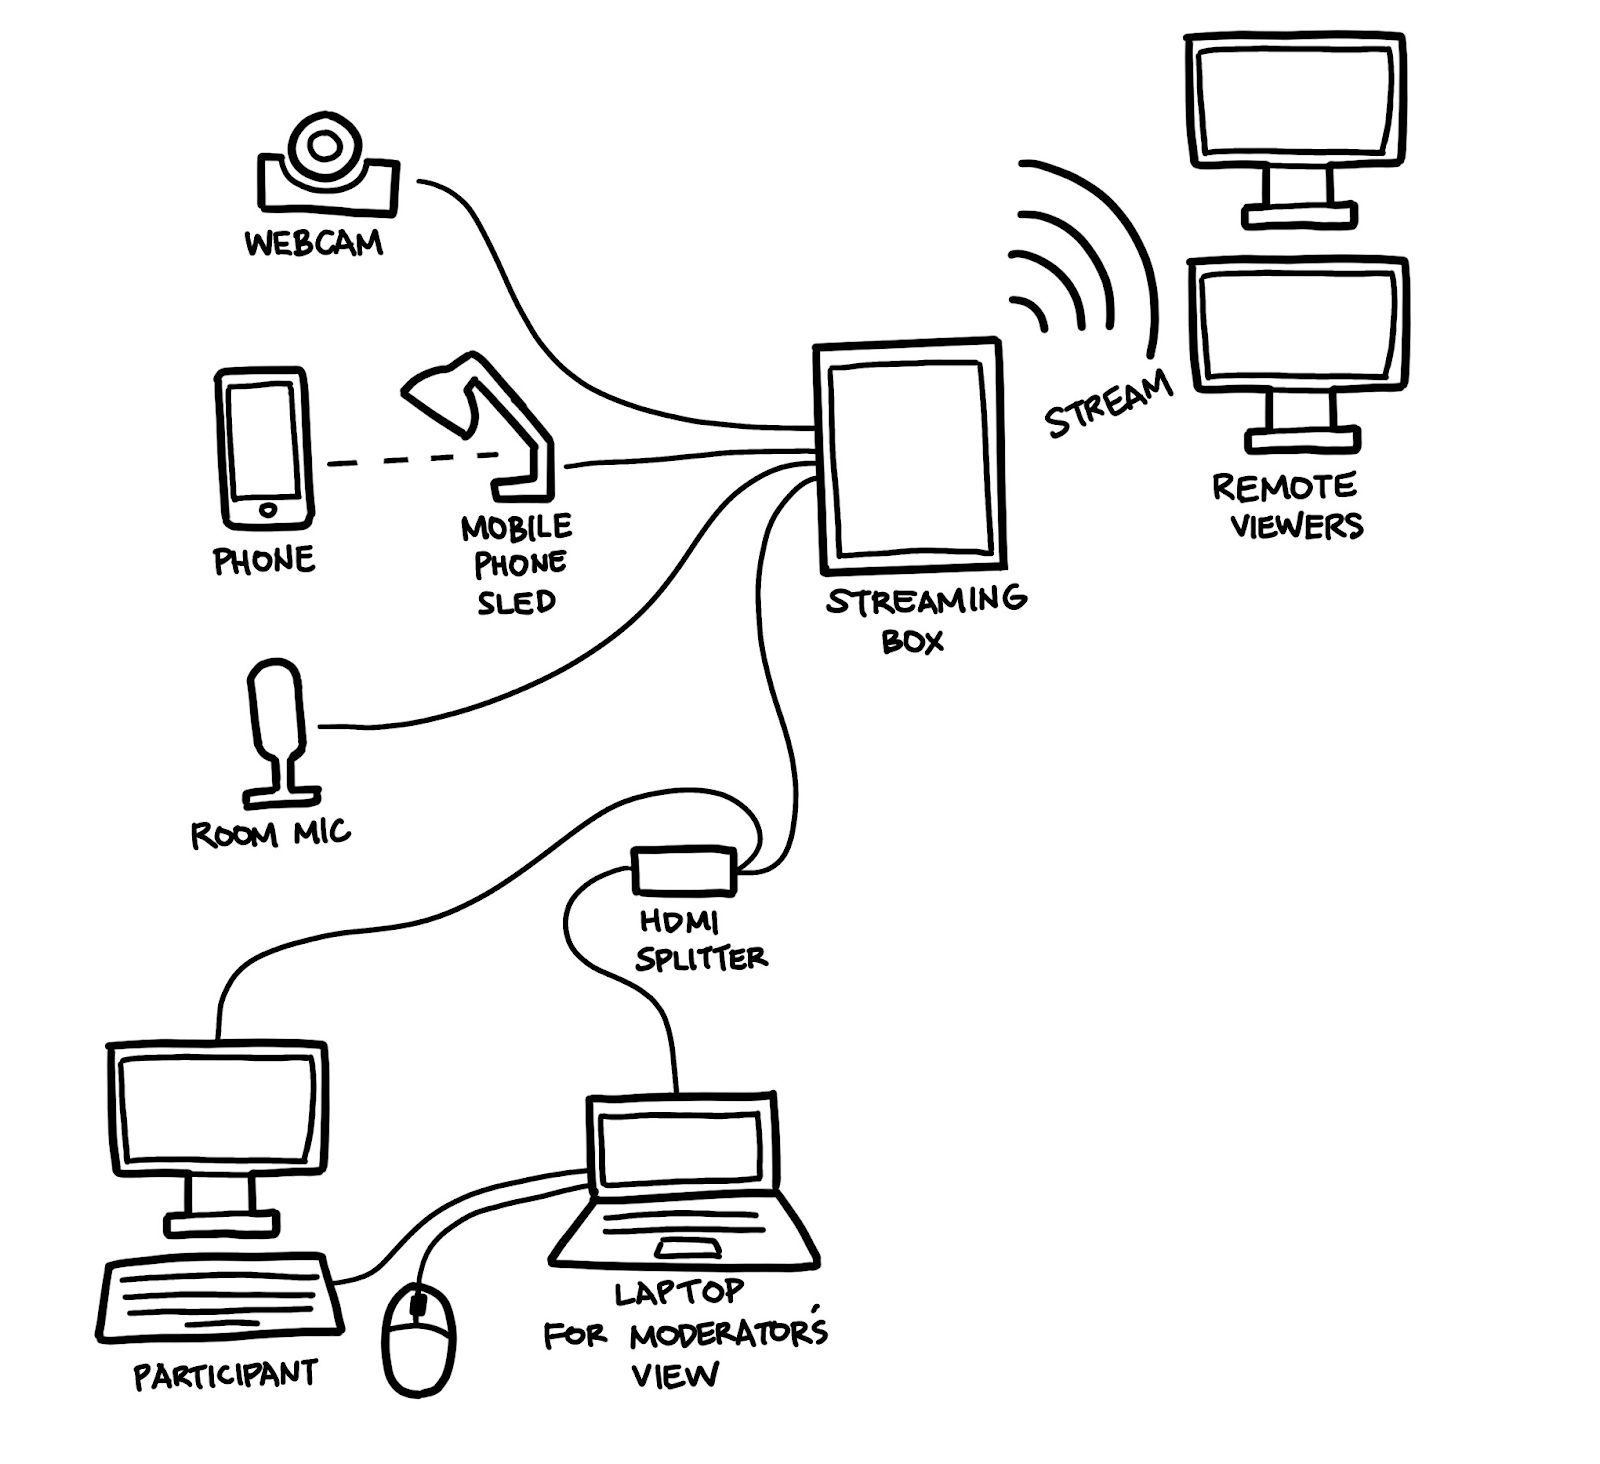 A diagram showing a full lab setup, with a streaming box in the center